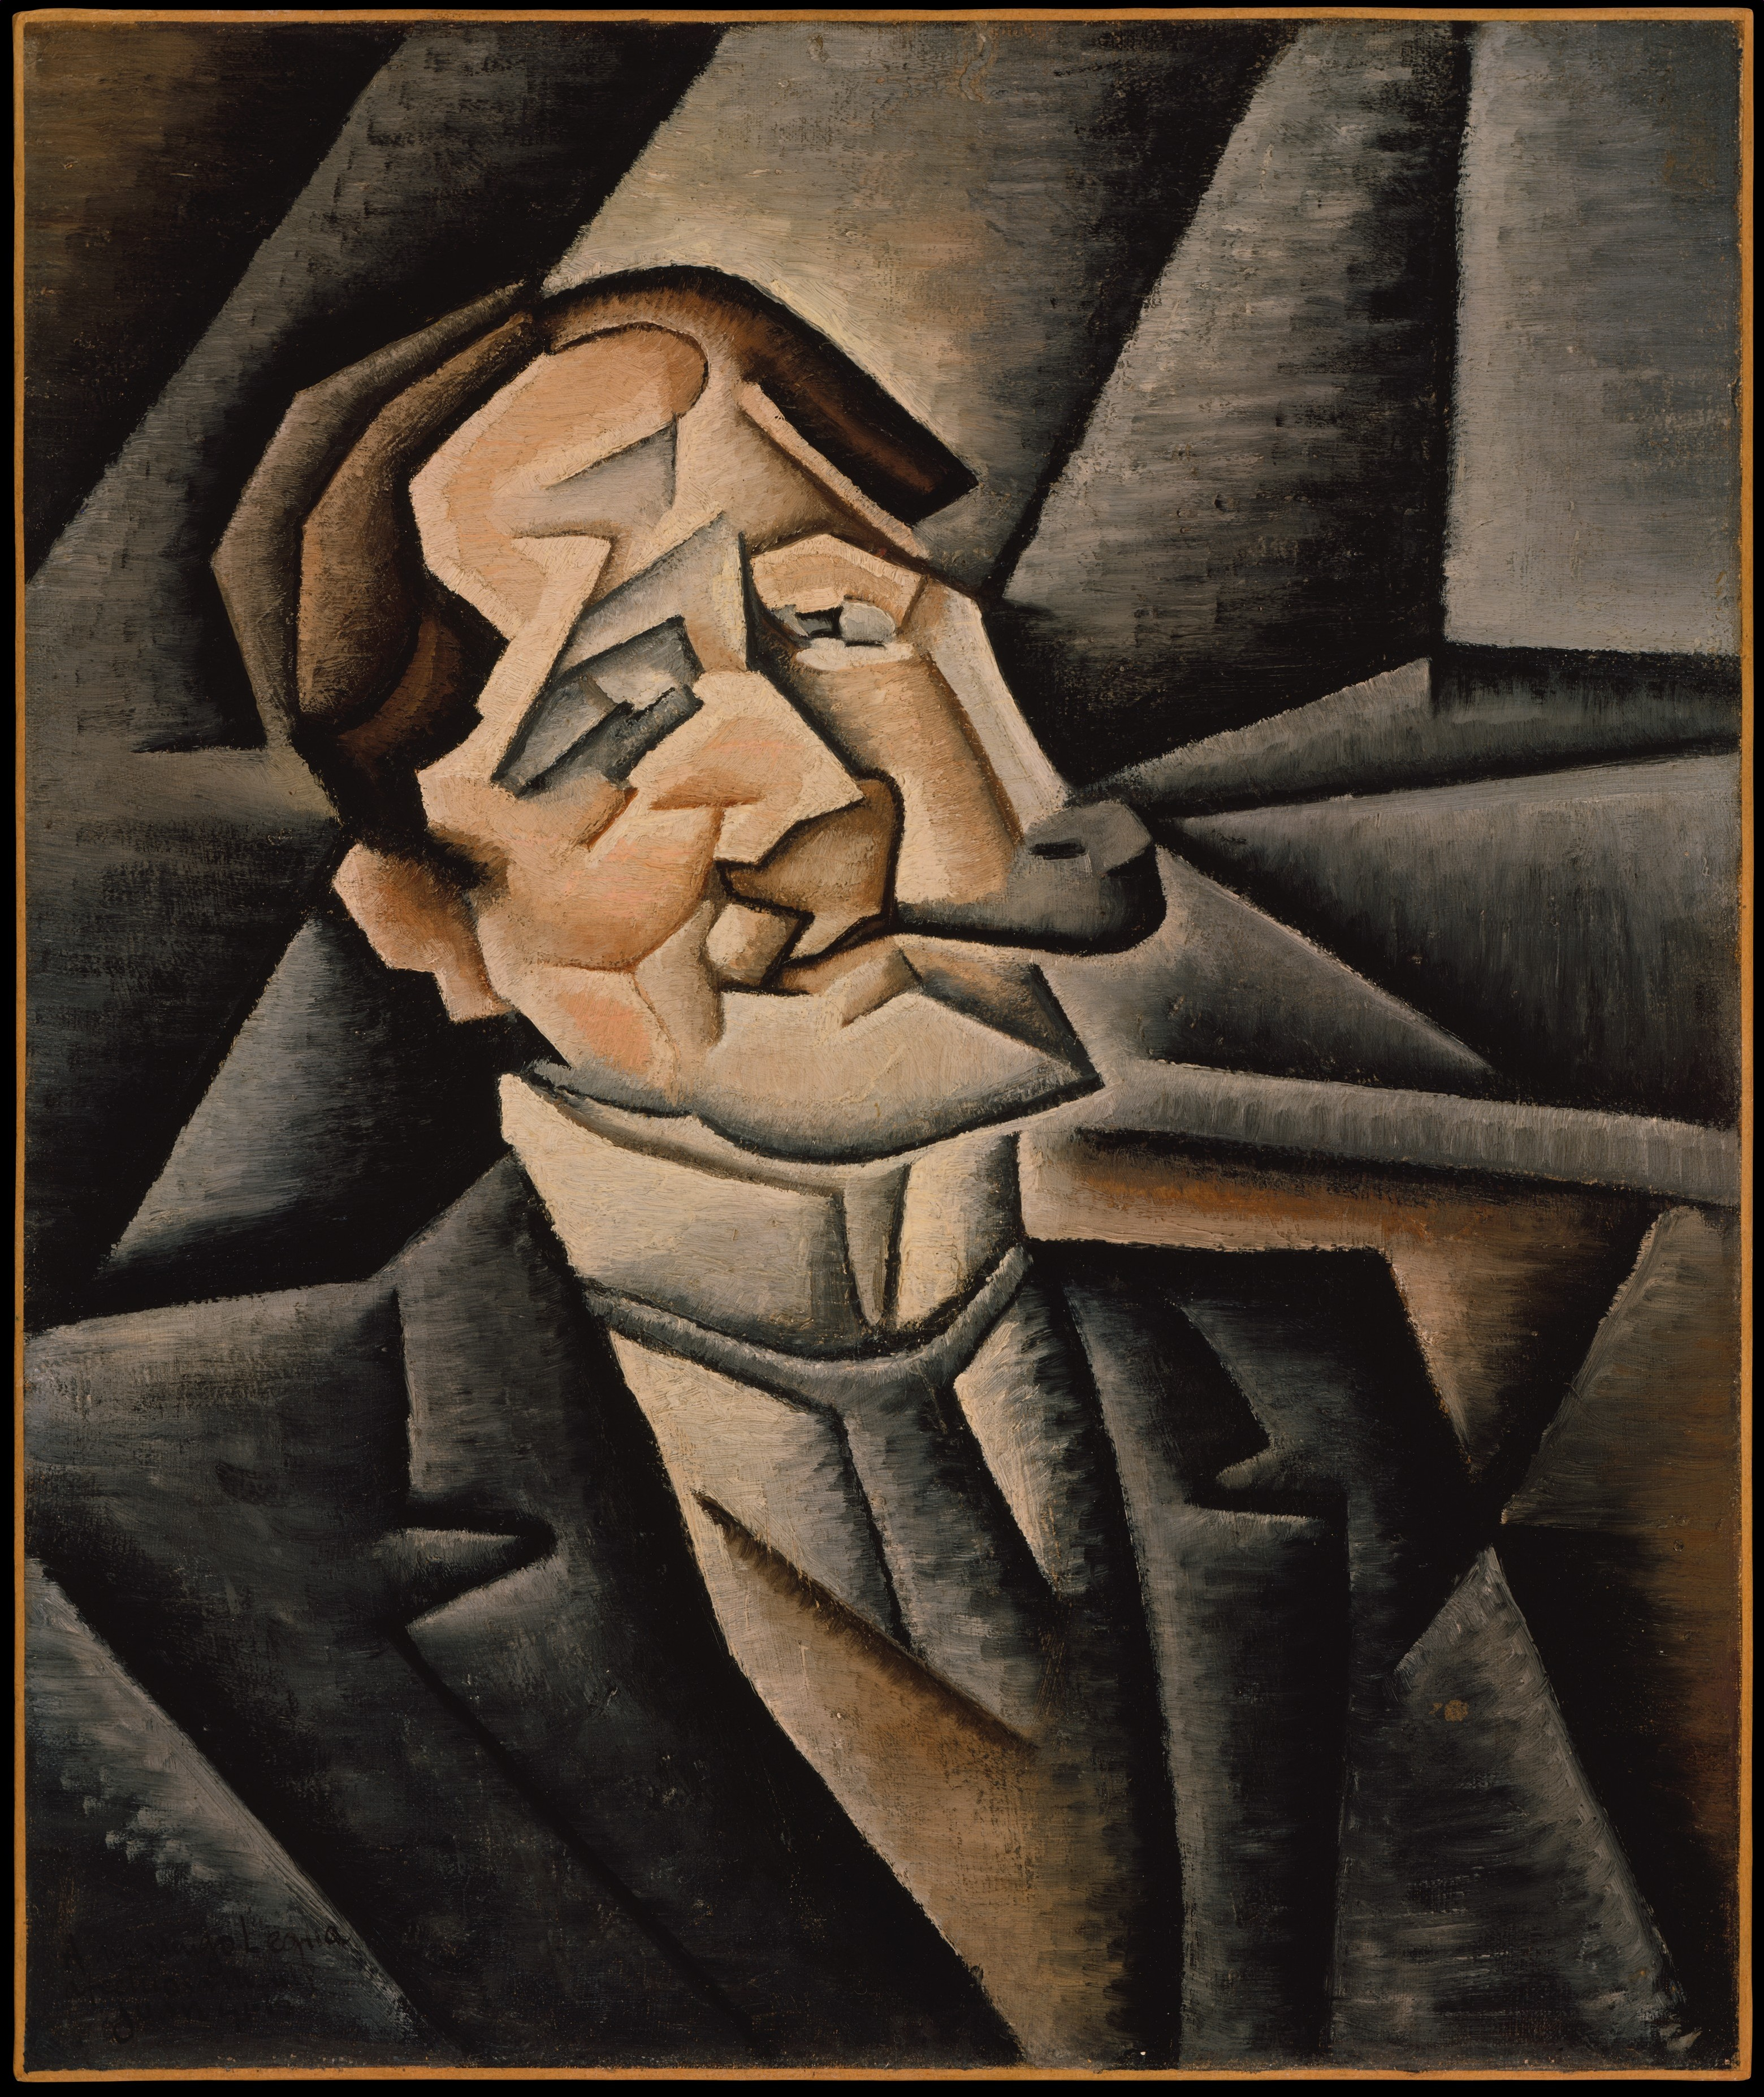 The painting 'Juan Legua' by Juan Gris